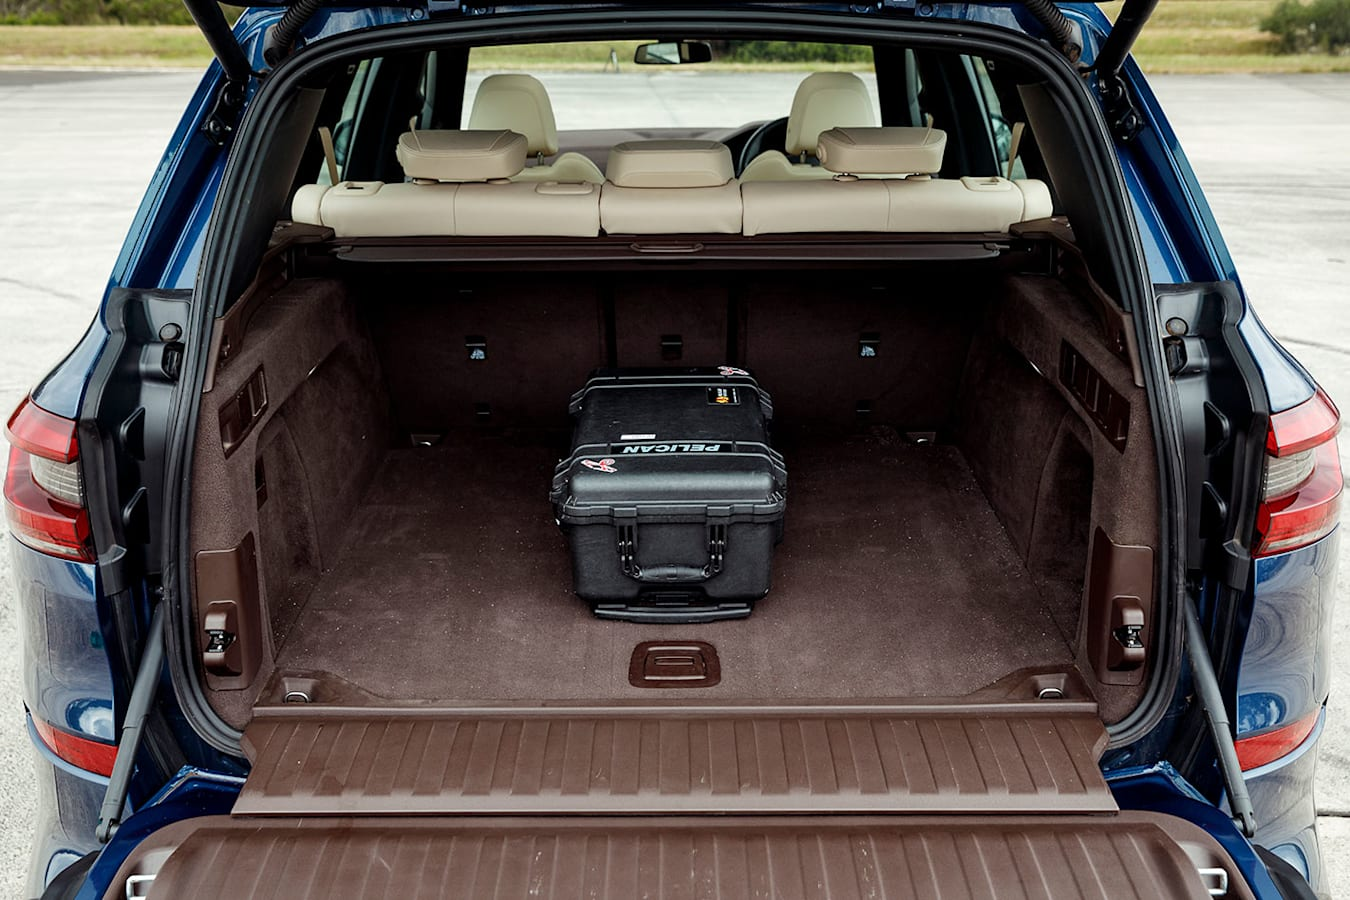 BMW X5 boot space